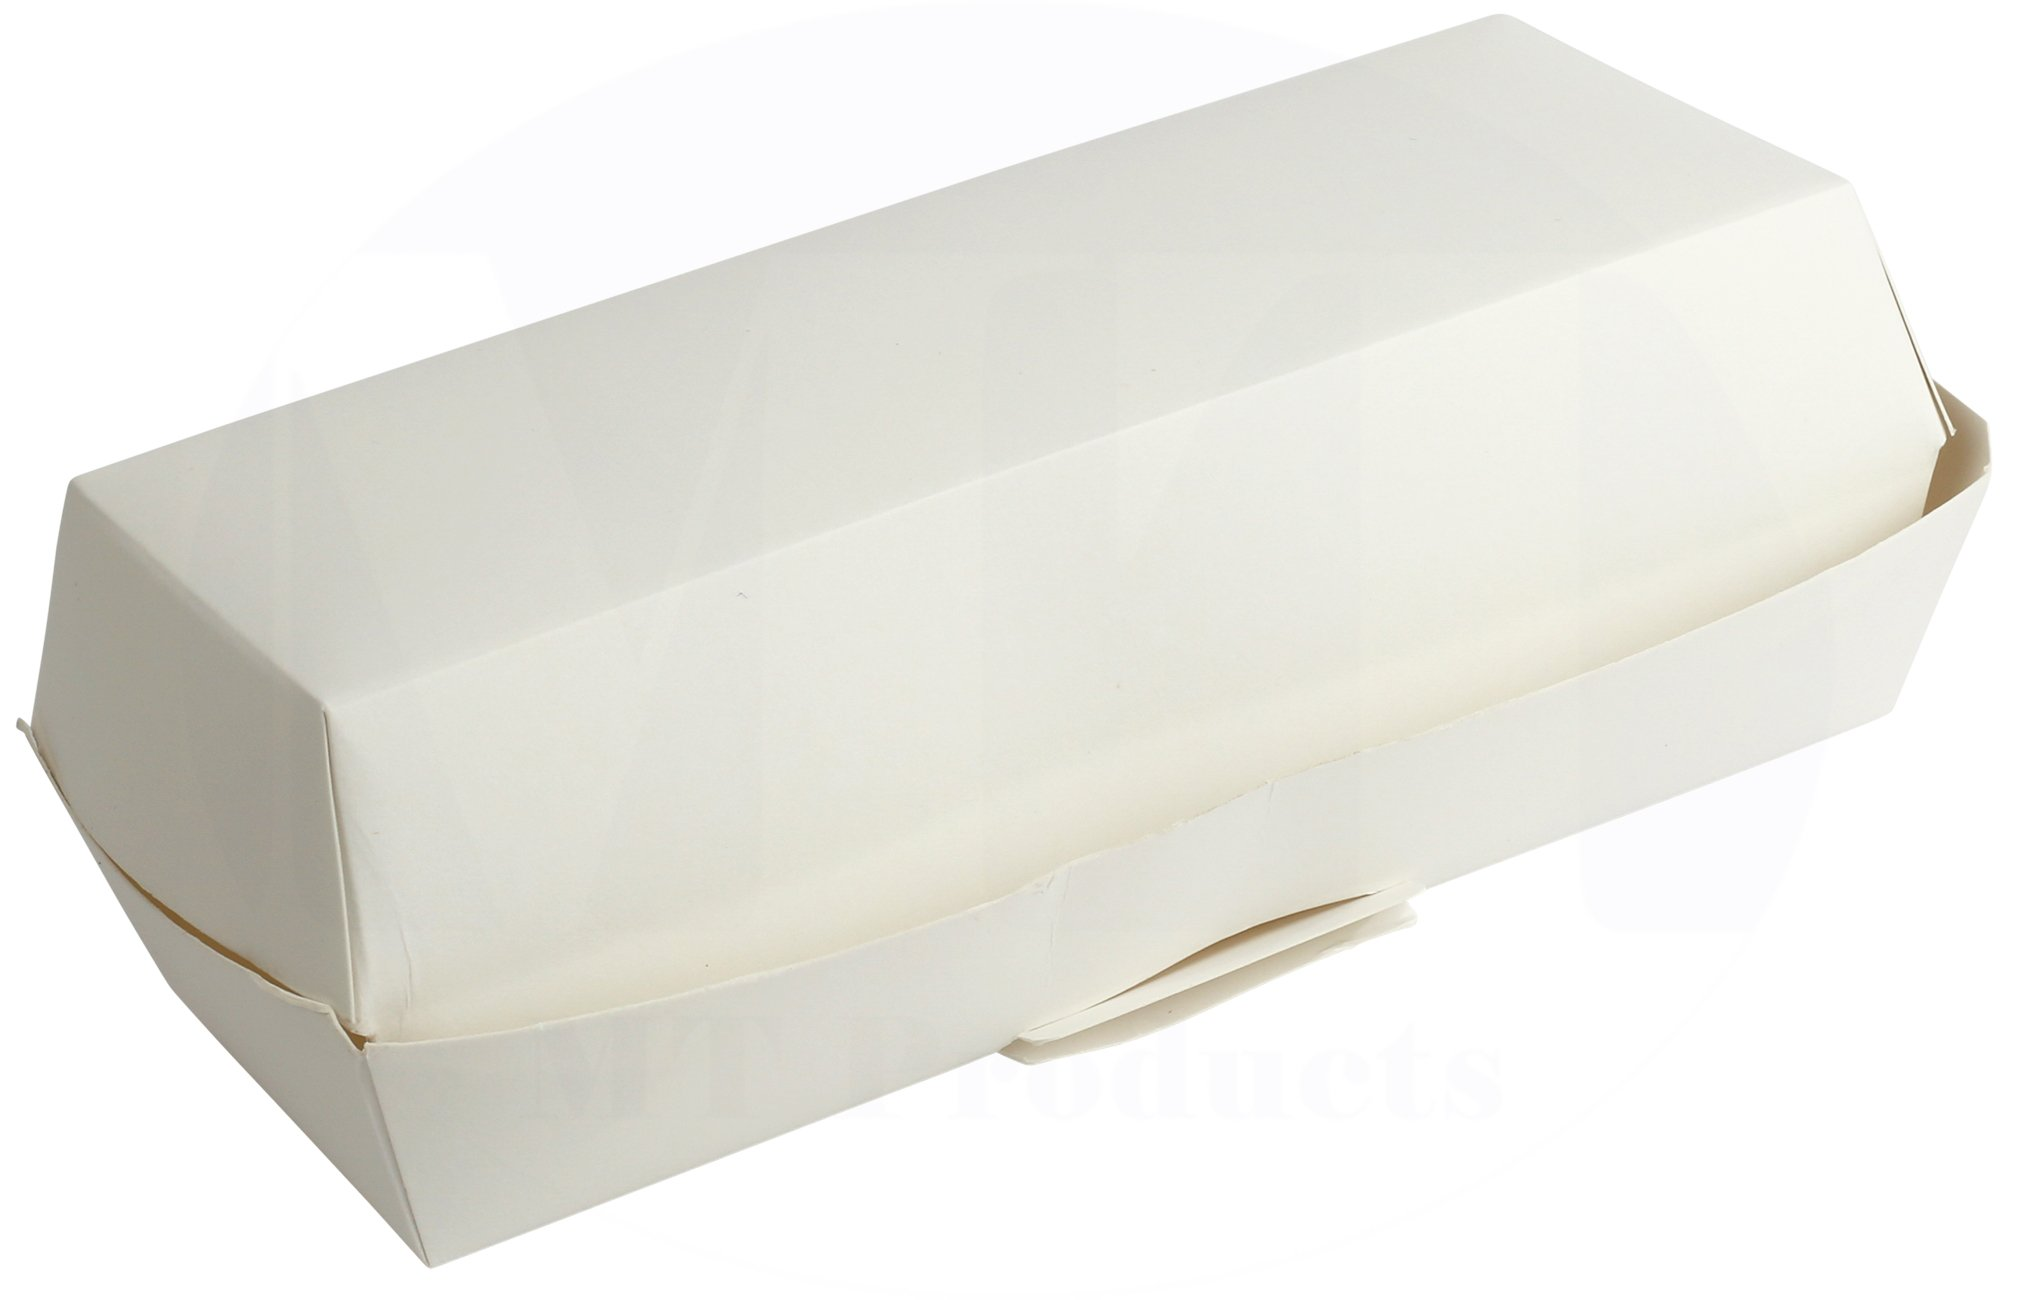 Disposable White Hinged Paper Hot Dog Tray/Clamshell Container by MT Products - (25 Pieces)